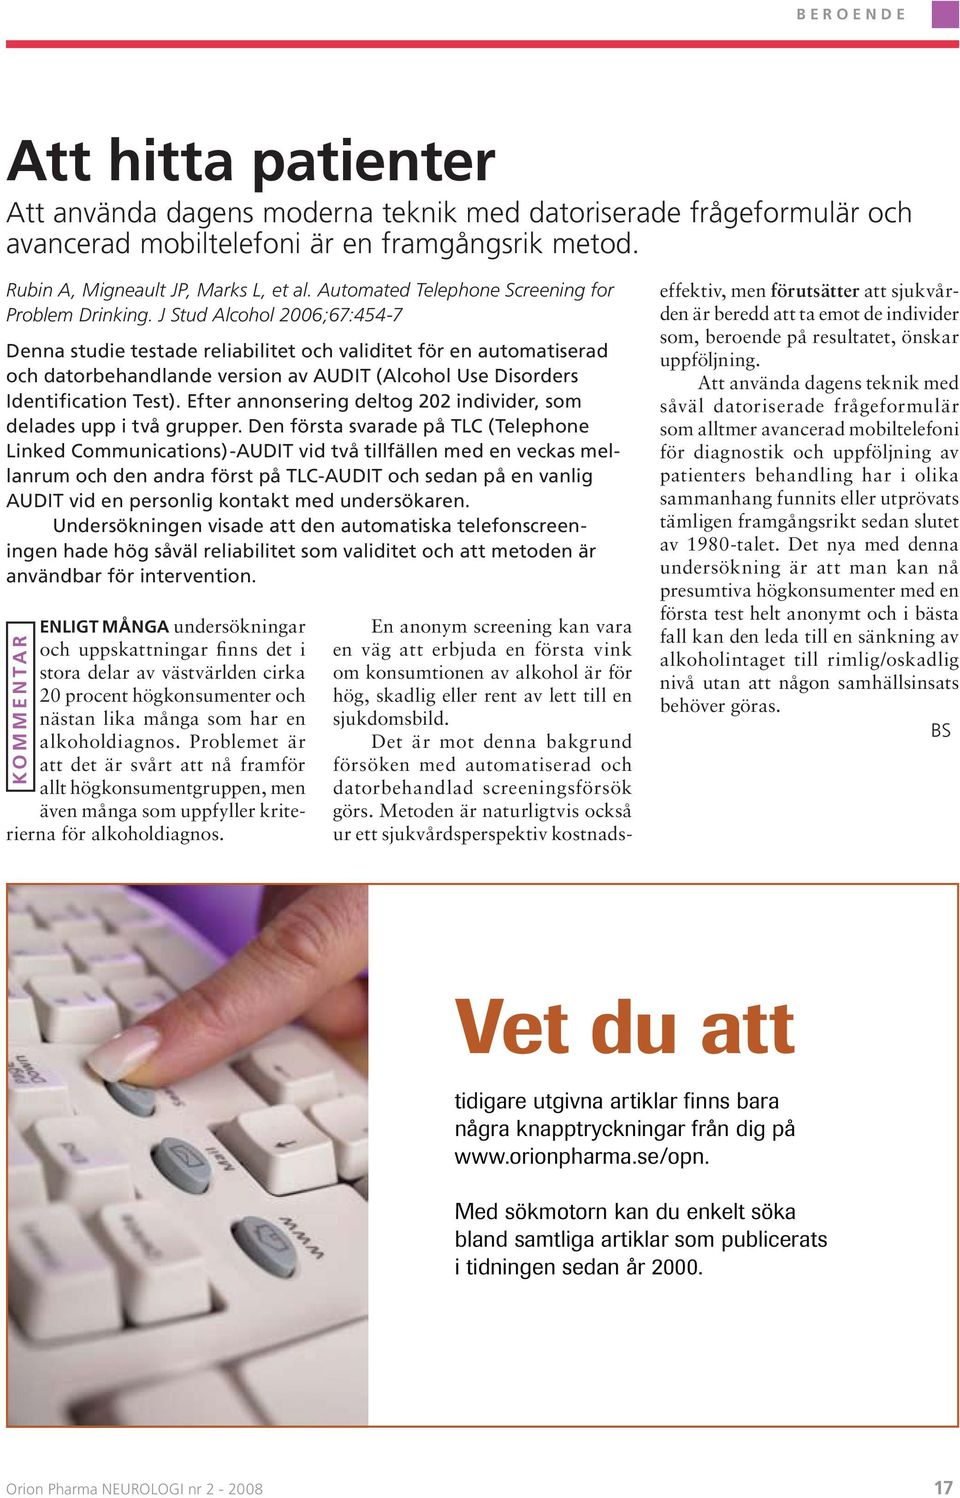 J Stud Alcohol 2006;67:454-7 Denna studie testade reliabilitet och validitet för en automatiserad och datorbehandlande version av AUDIT (Alcohol Use Disorders Identification Test).